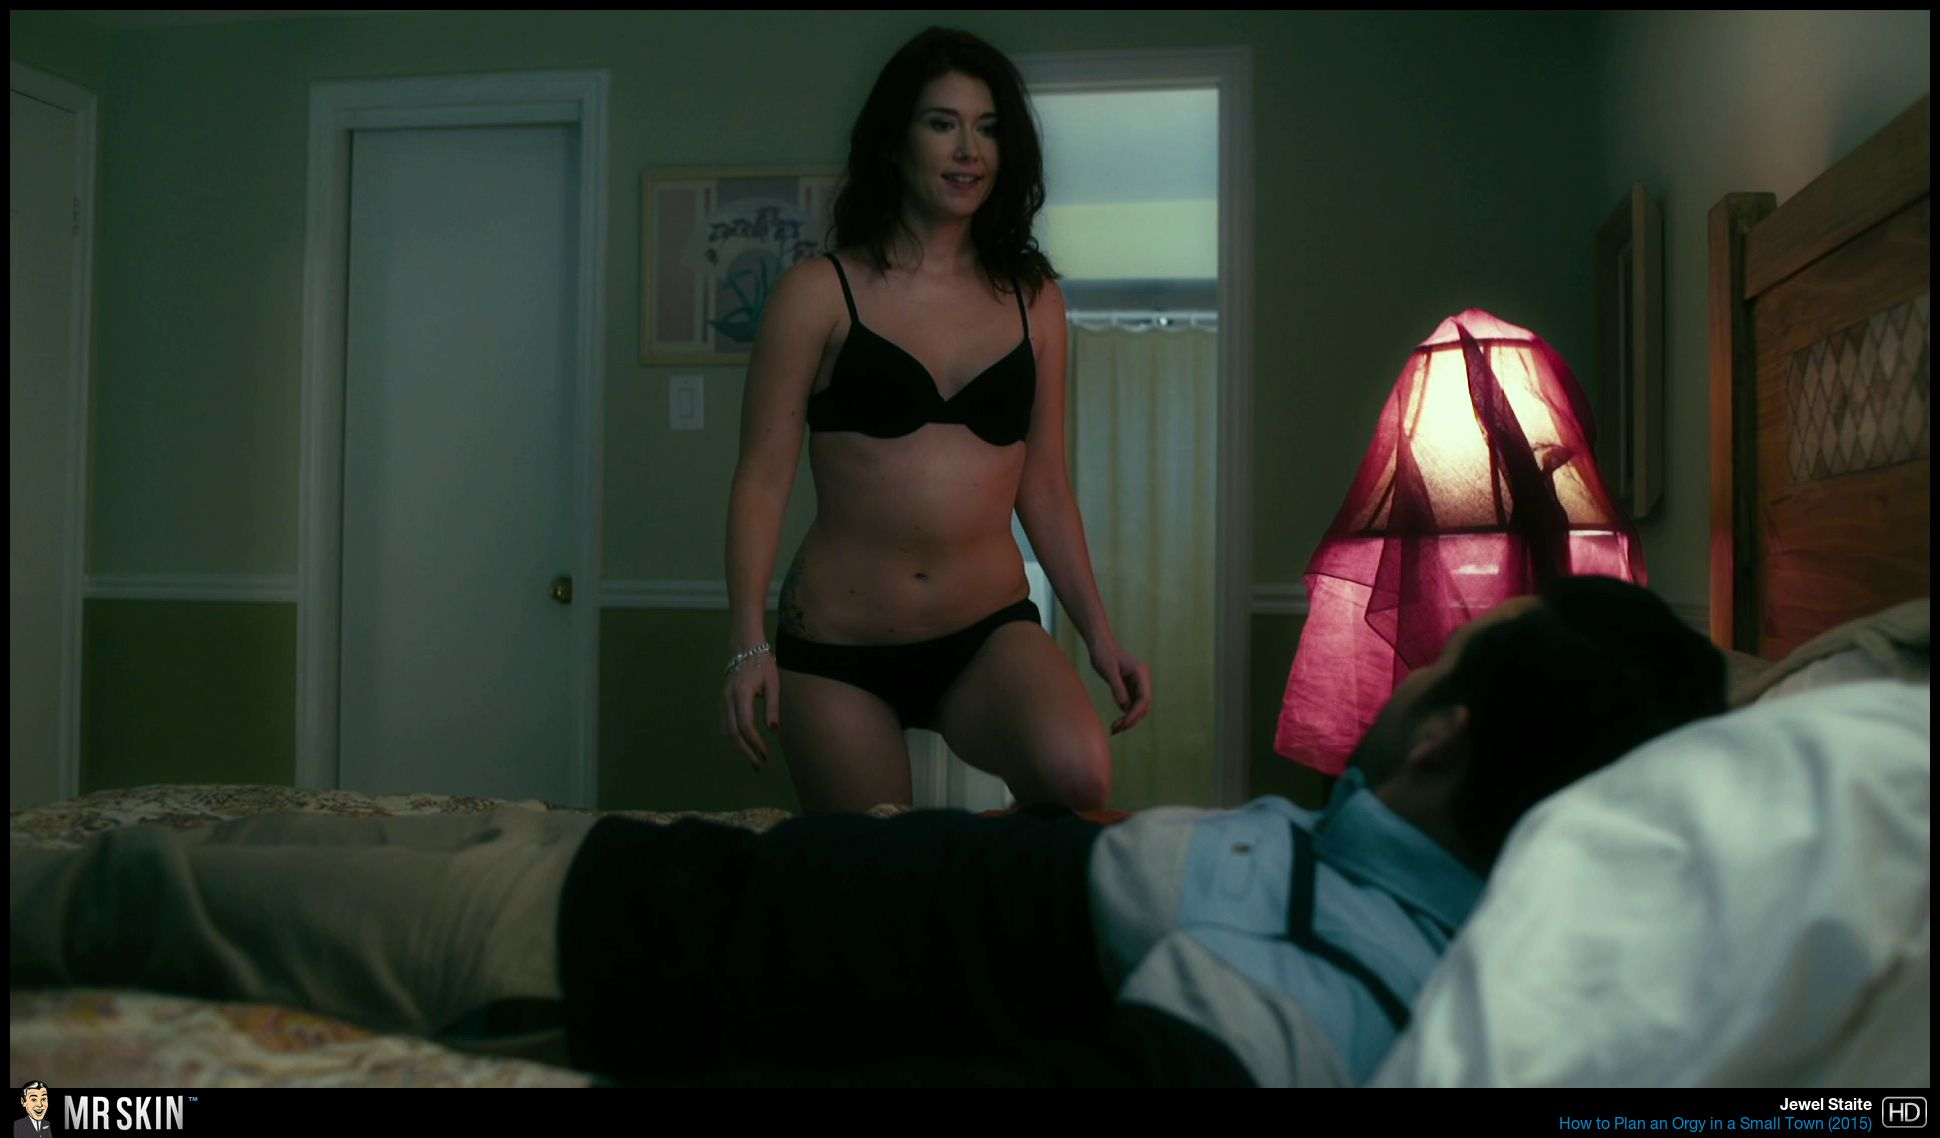 Image result for jewel staite NUDE SCENES